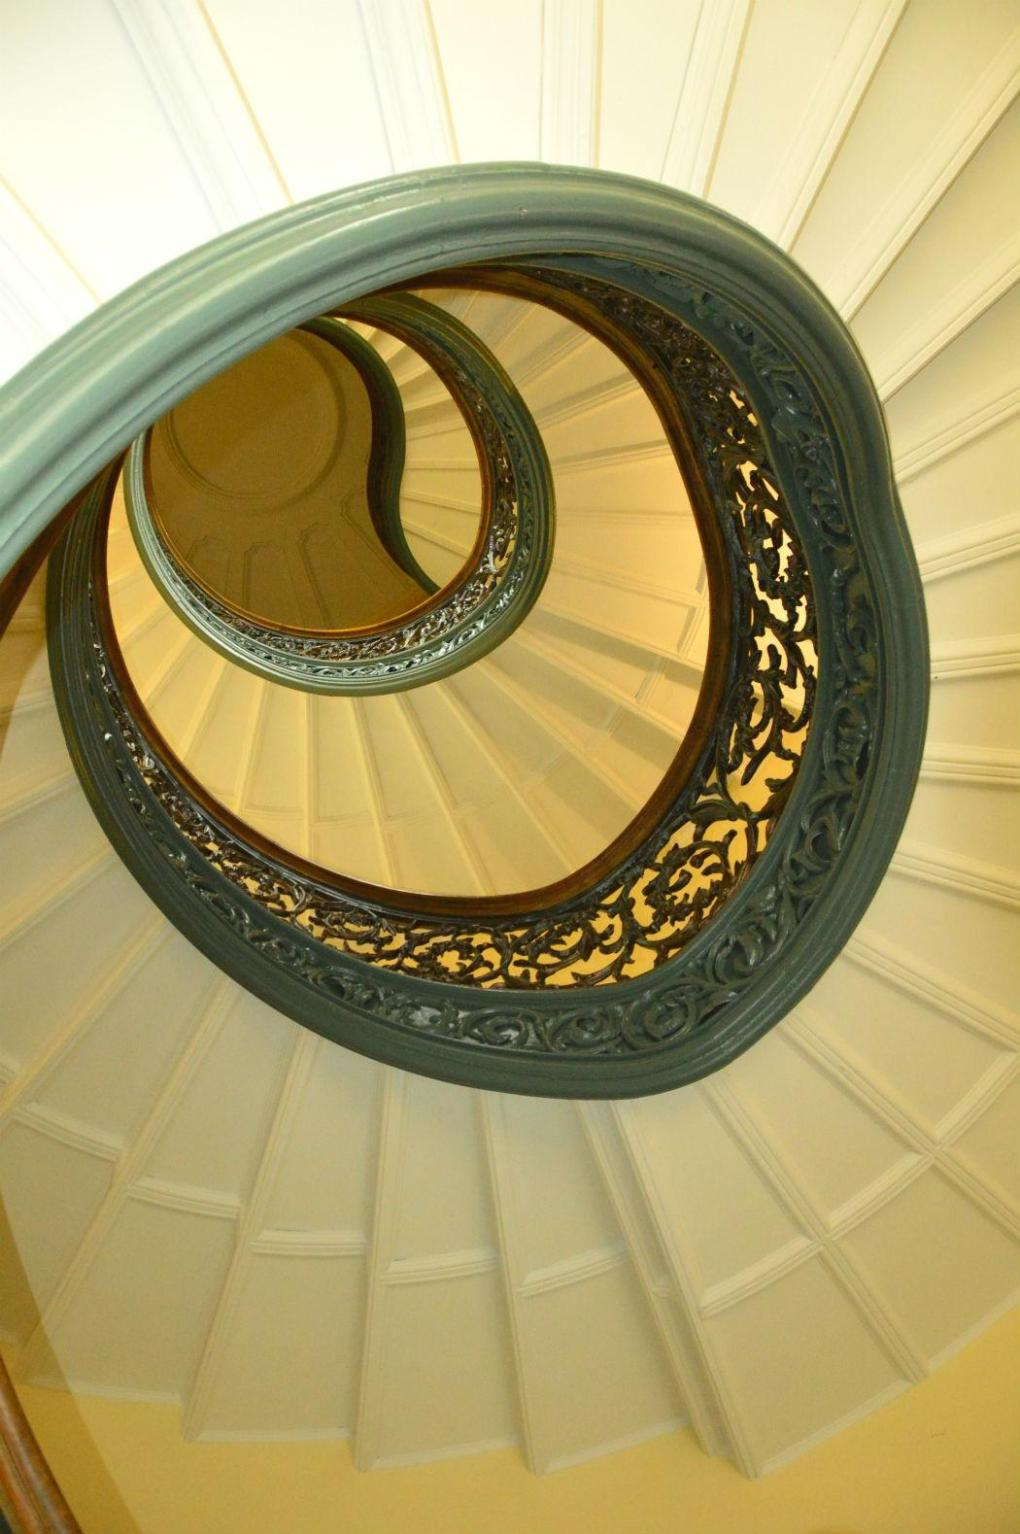 peabody institute spiral staircase